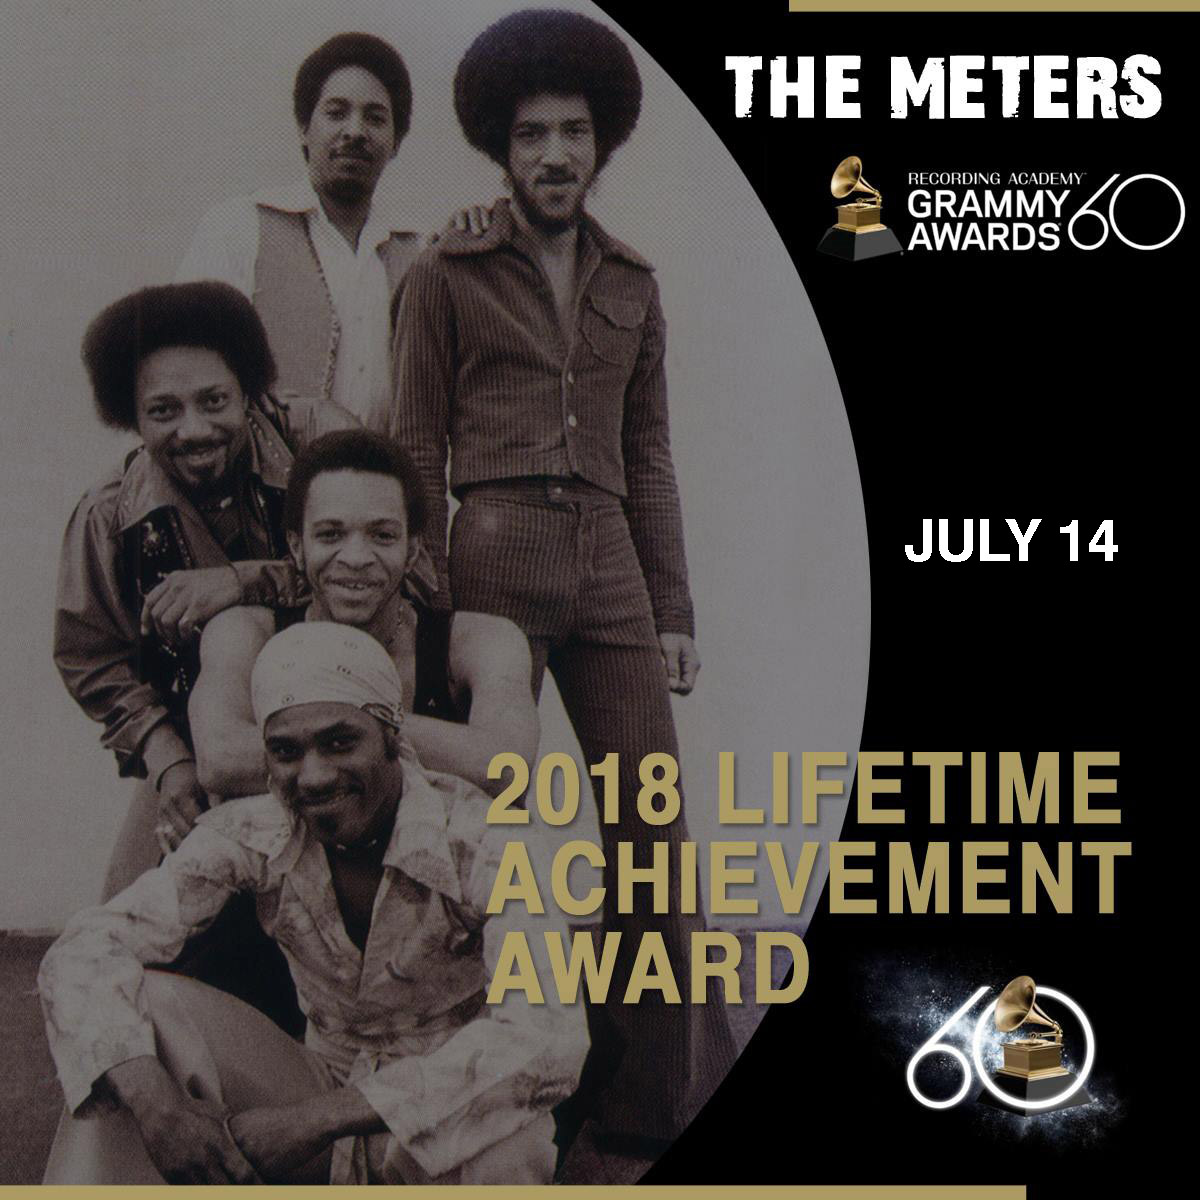 The Meters Lifetime Achievement Award Grammys